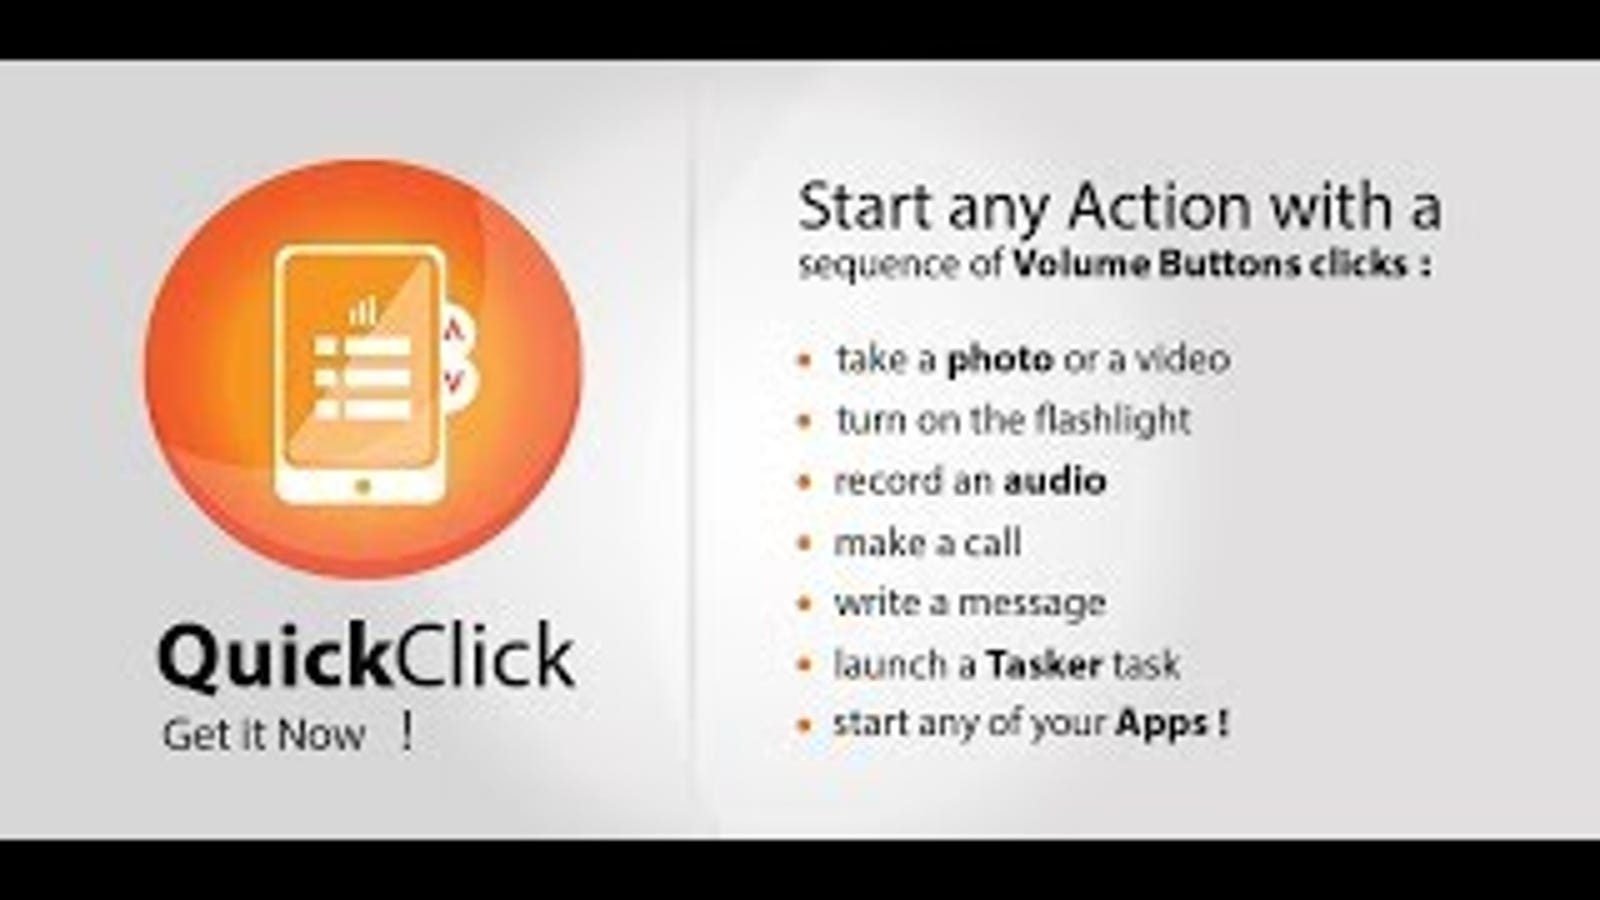 QuickClick Customizes Volume Button Actions, No Root Required